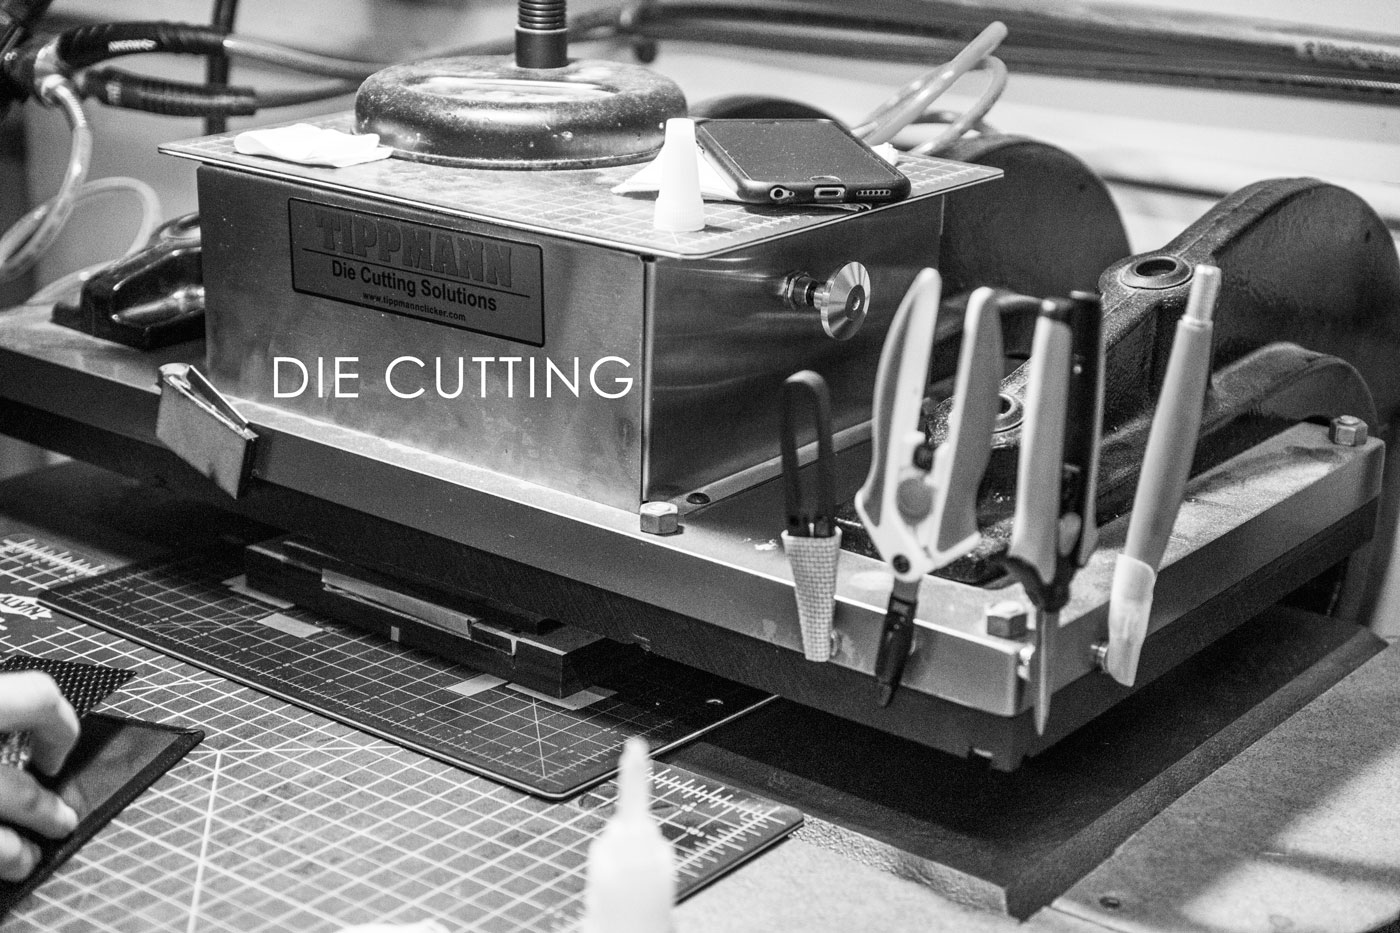 Die Cutting - With 15 tons of closing pressure we can cut through just about anything on our Tippmann Clicker 1500 Die Cutting Press.